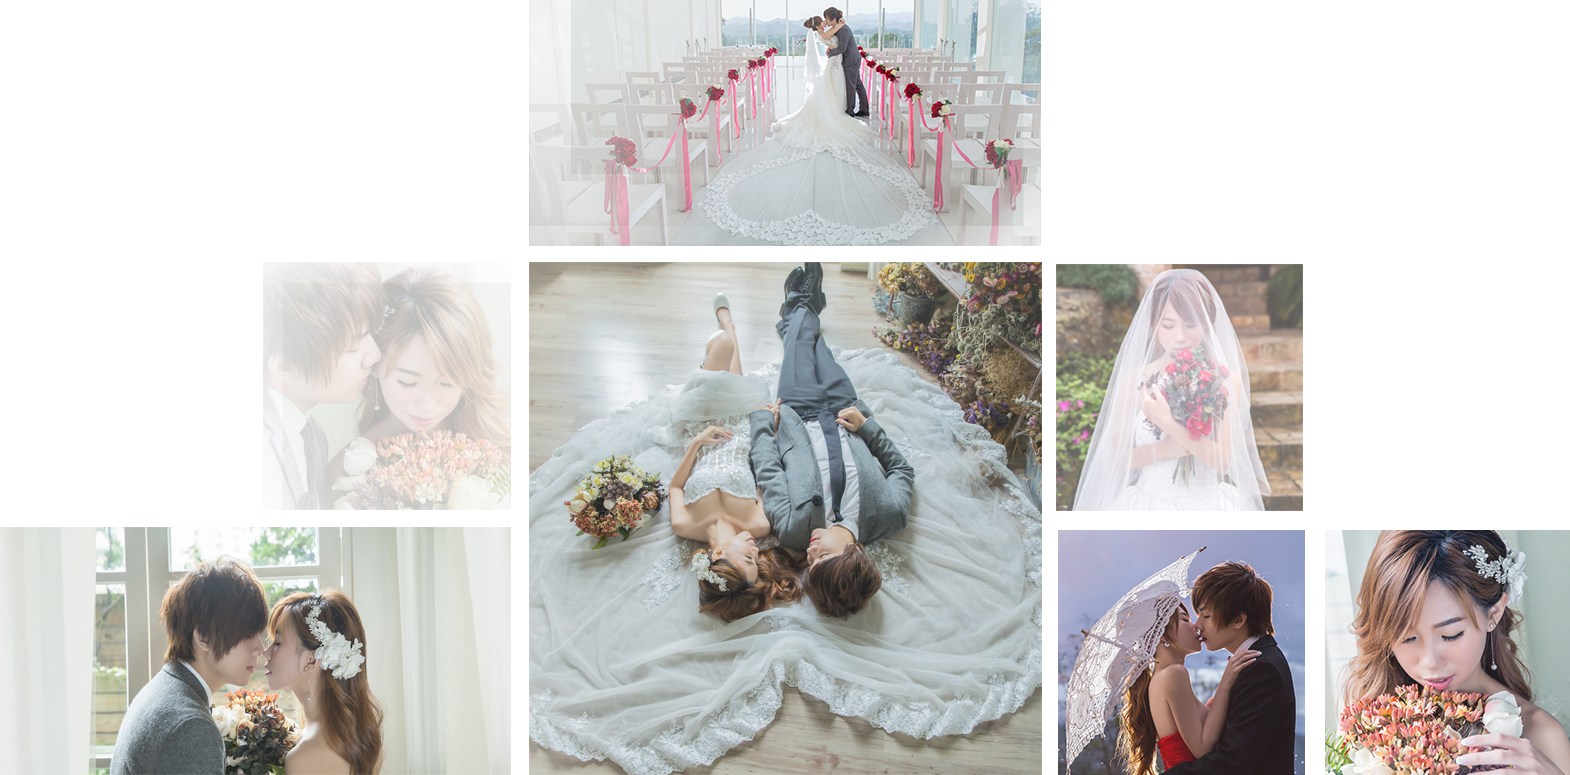 a collage of wedding photographs